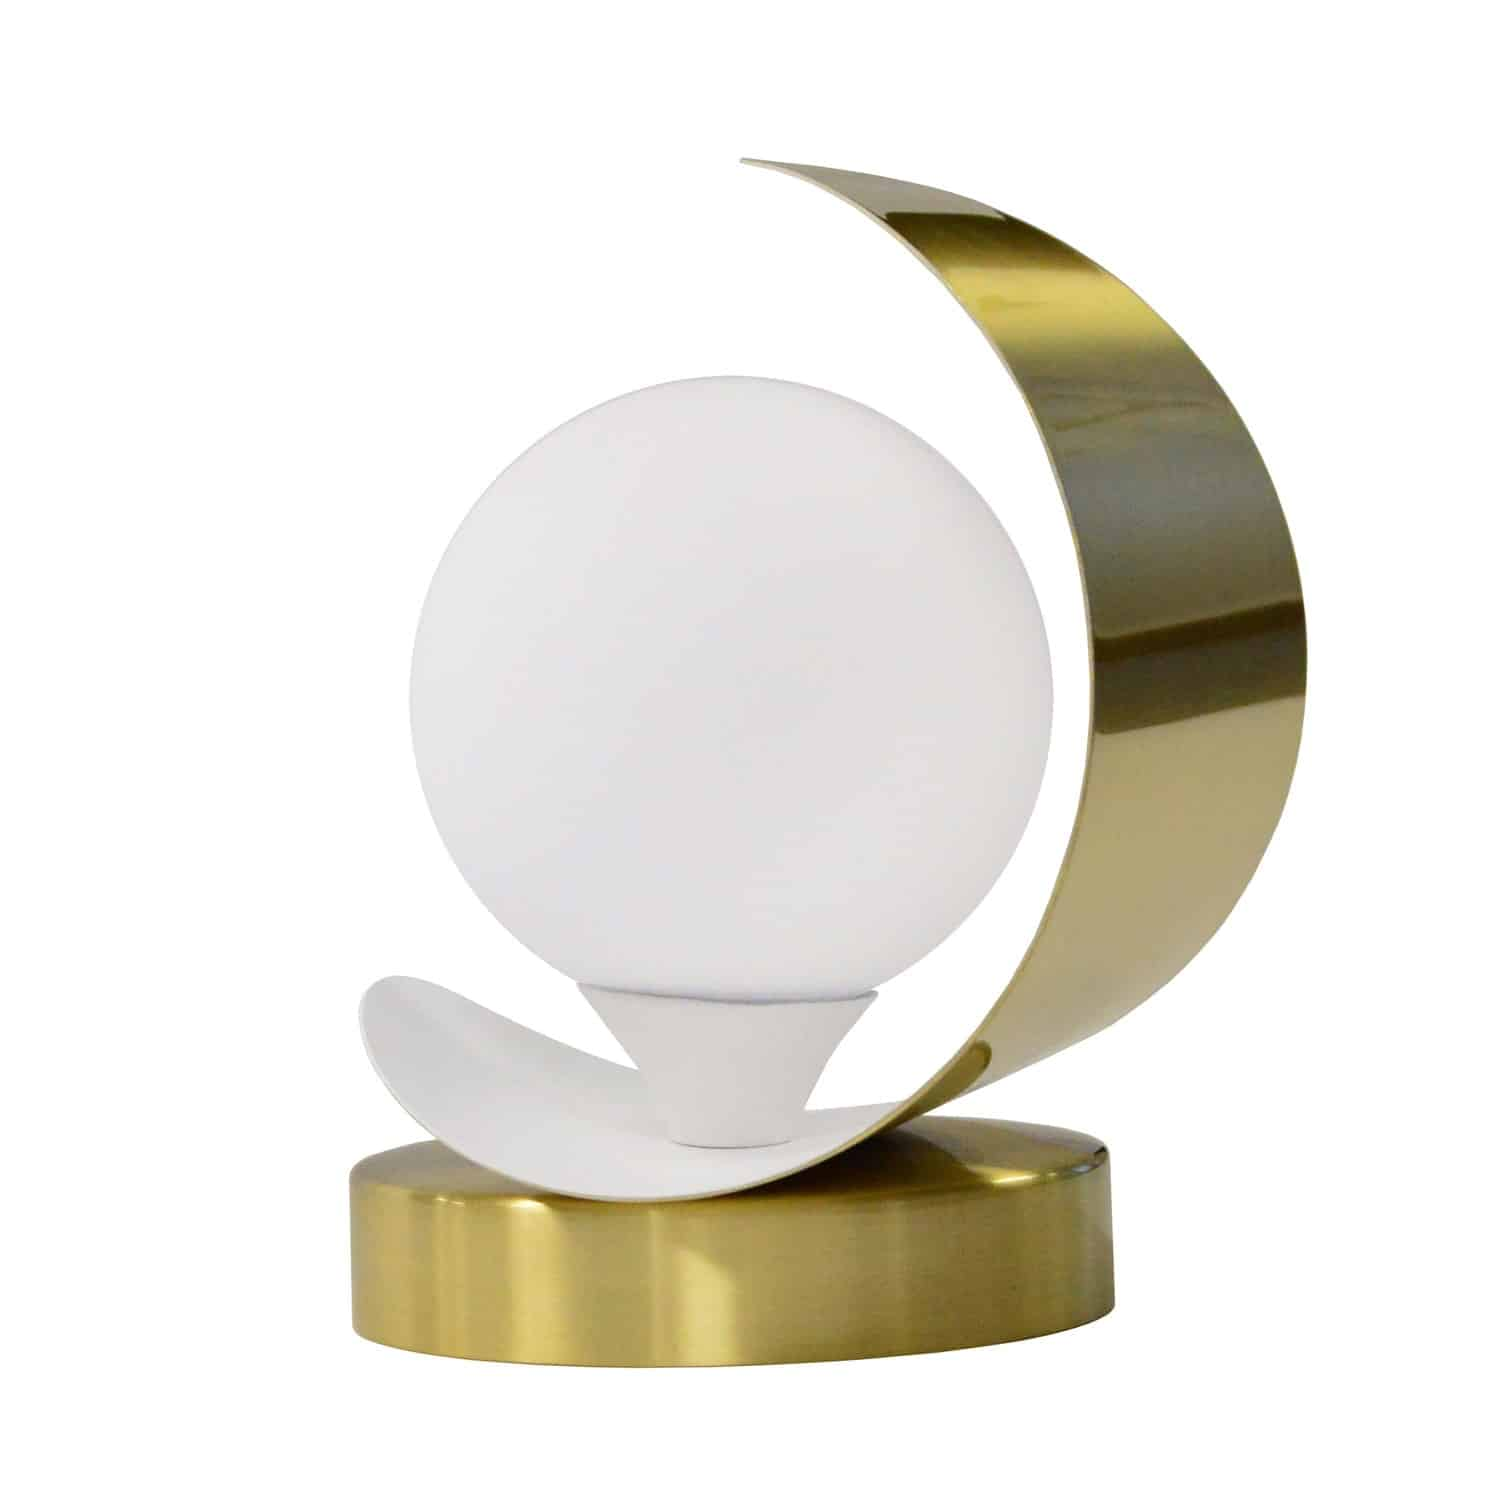 1 Light Table Lamp Aged Brass and Matte White Finish